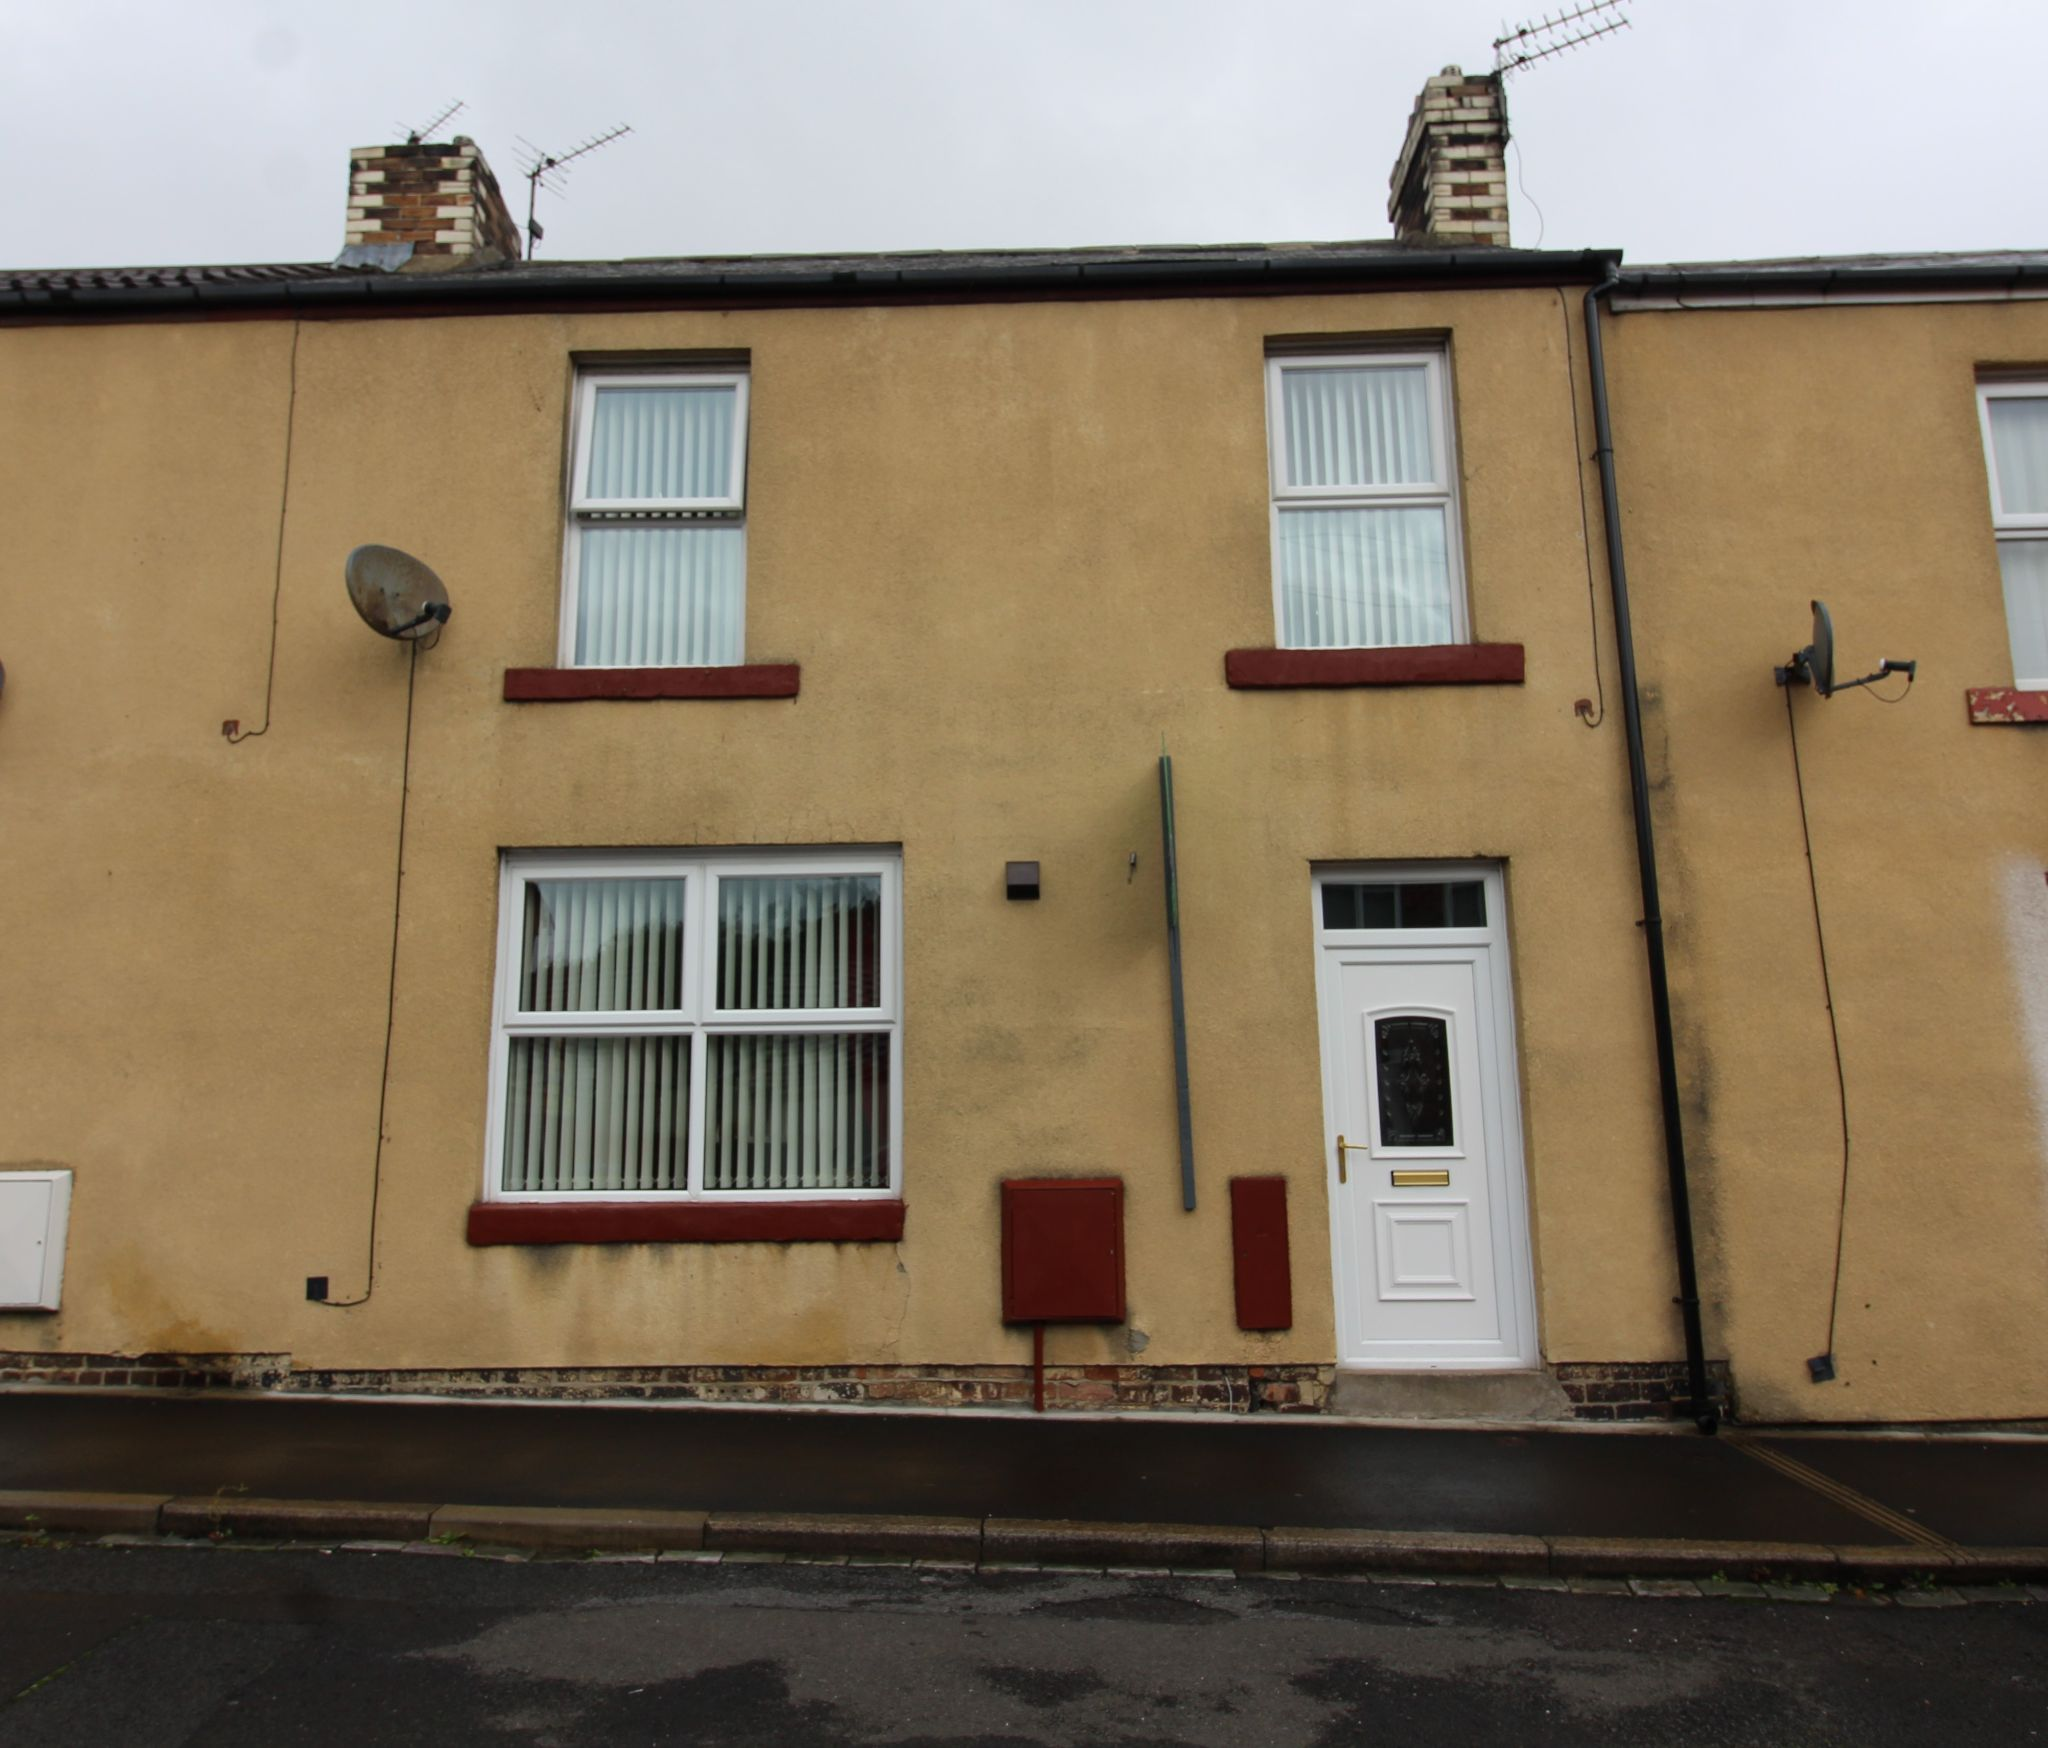 3 bedroom mid terraced house For Sale in Willington And Hunwick - Front of Property.